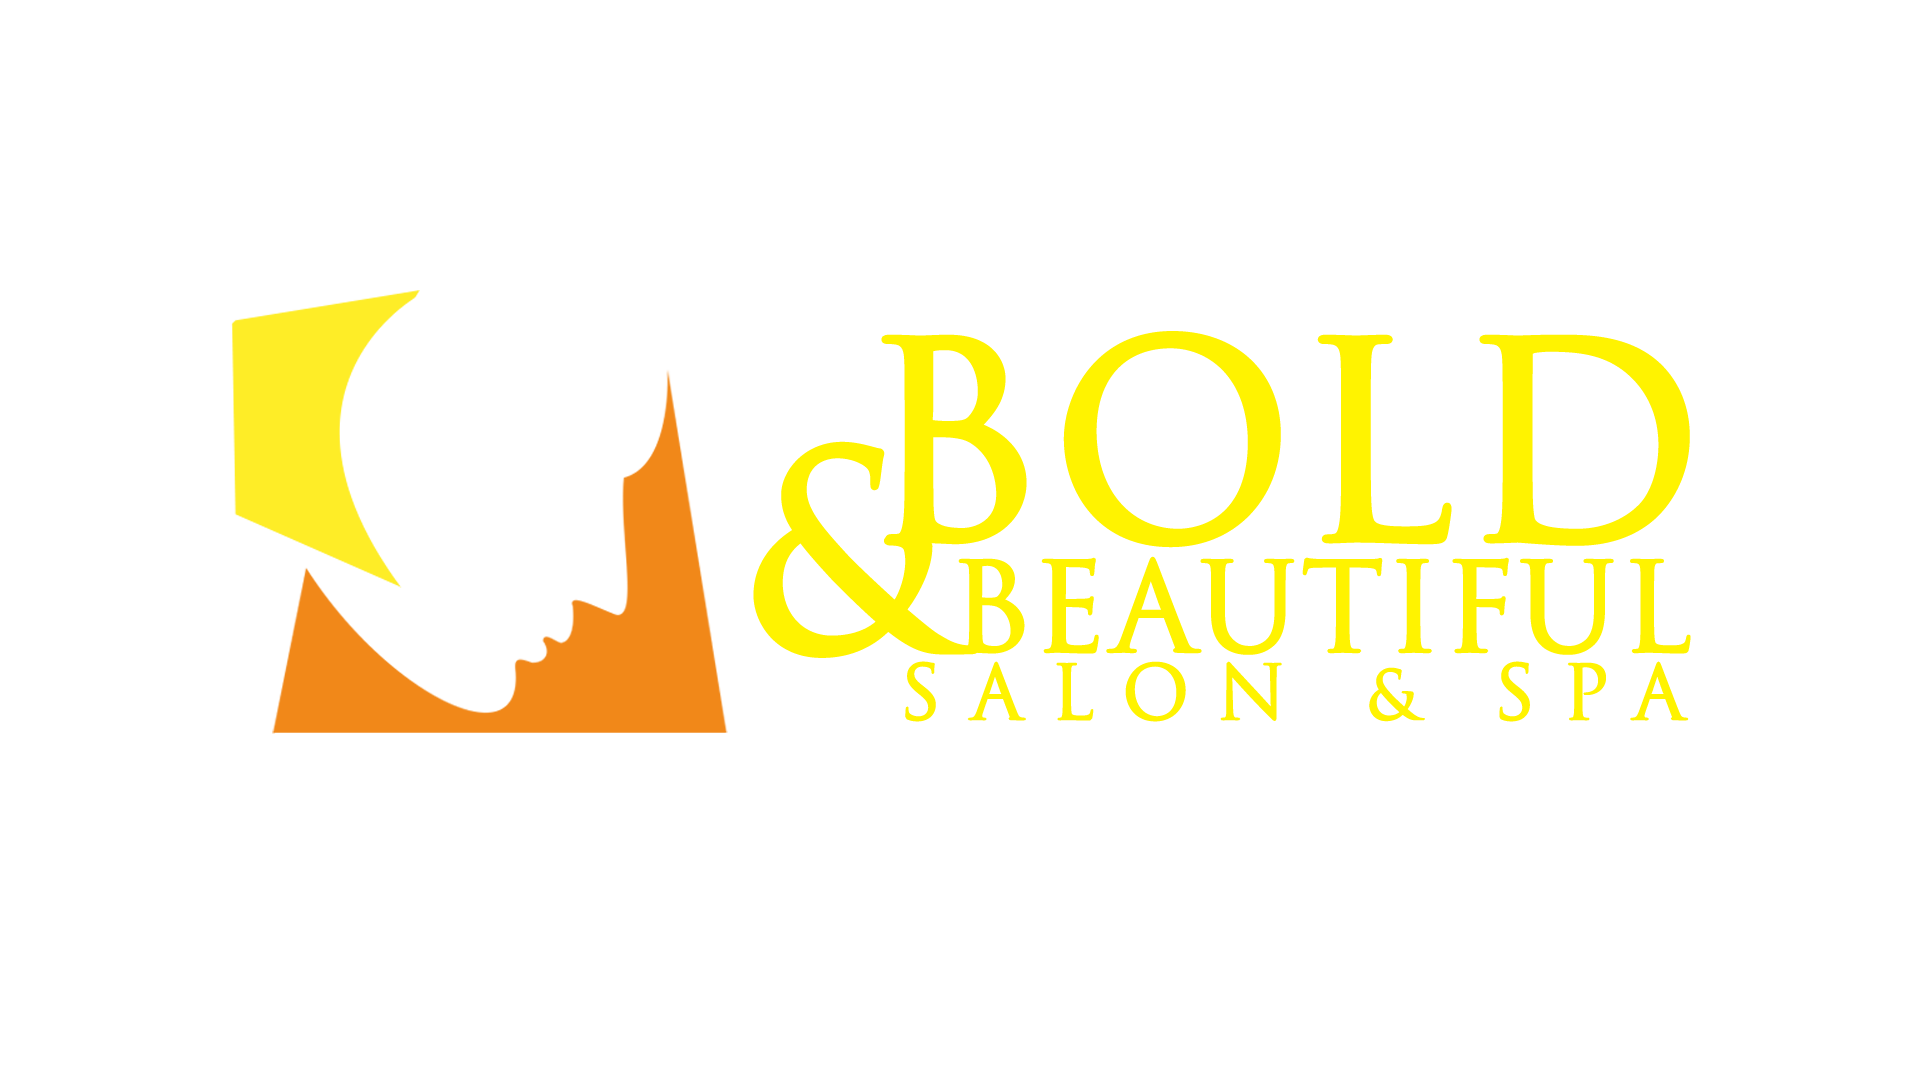 Bold And Beautiful Salon/Spa